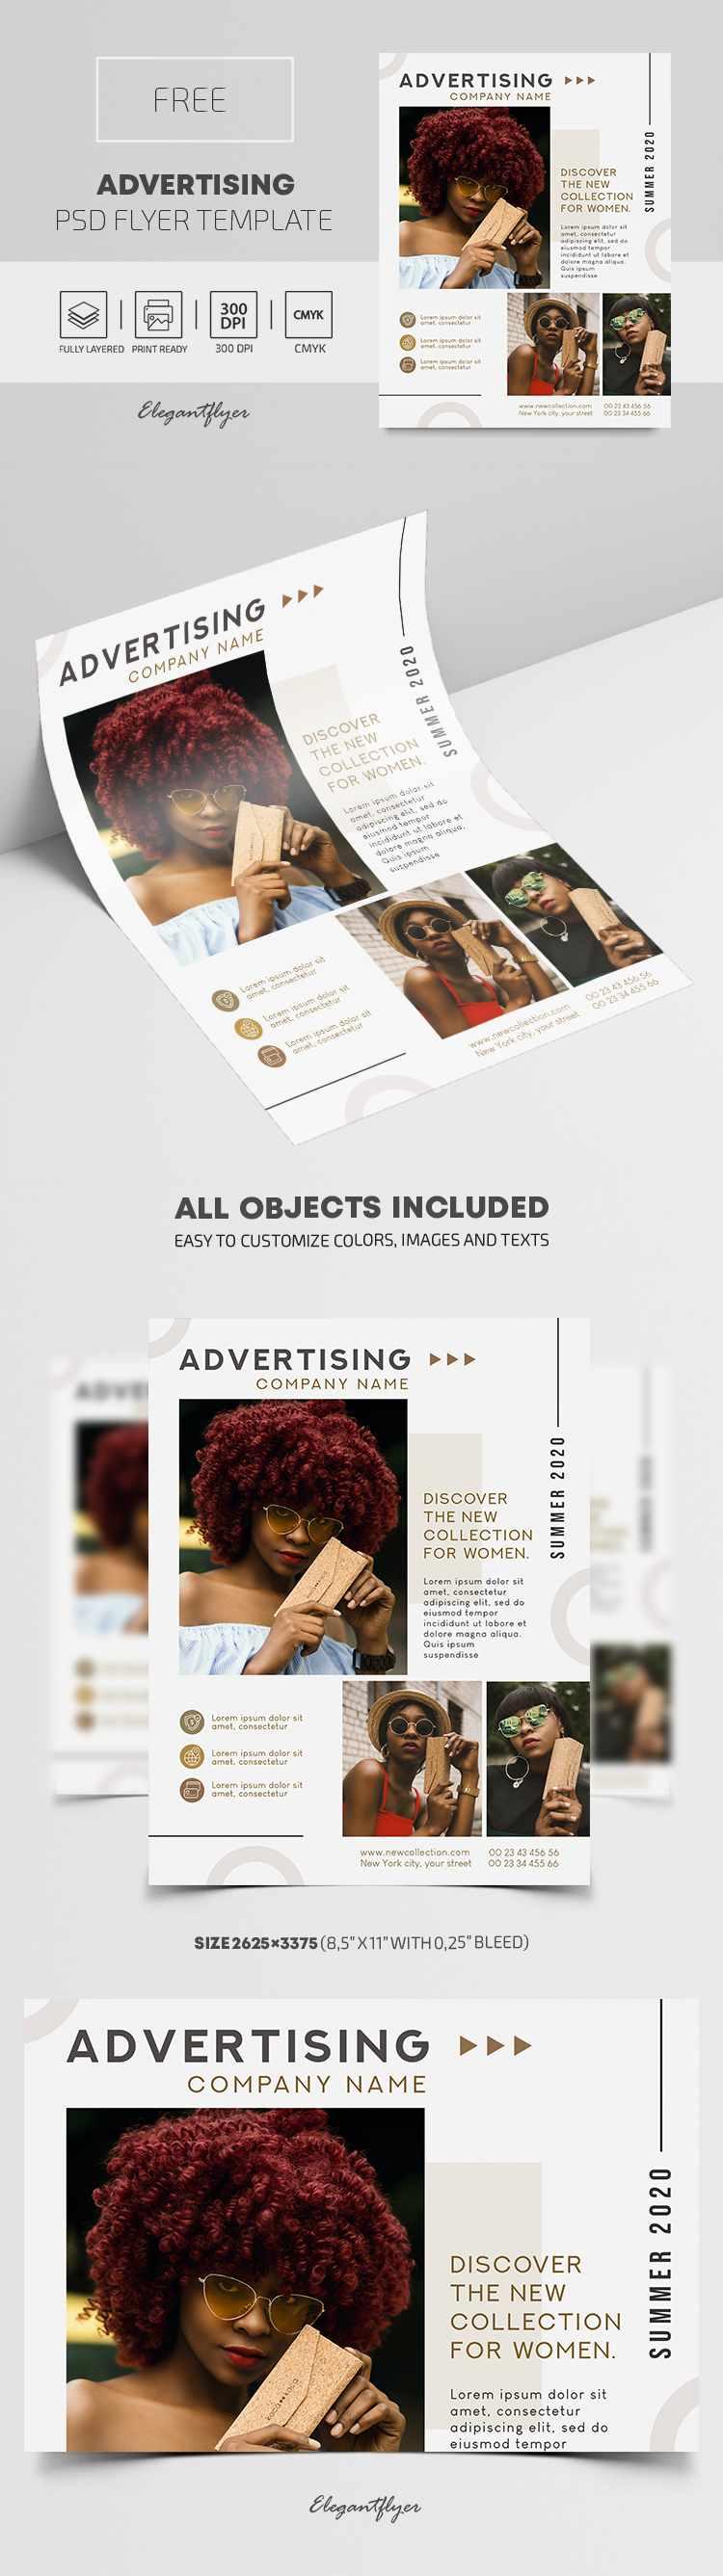 Advertising – Free PSD Flyer Template